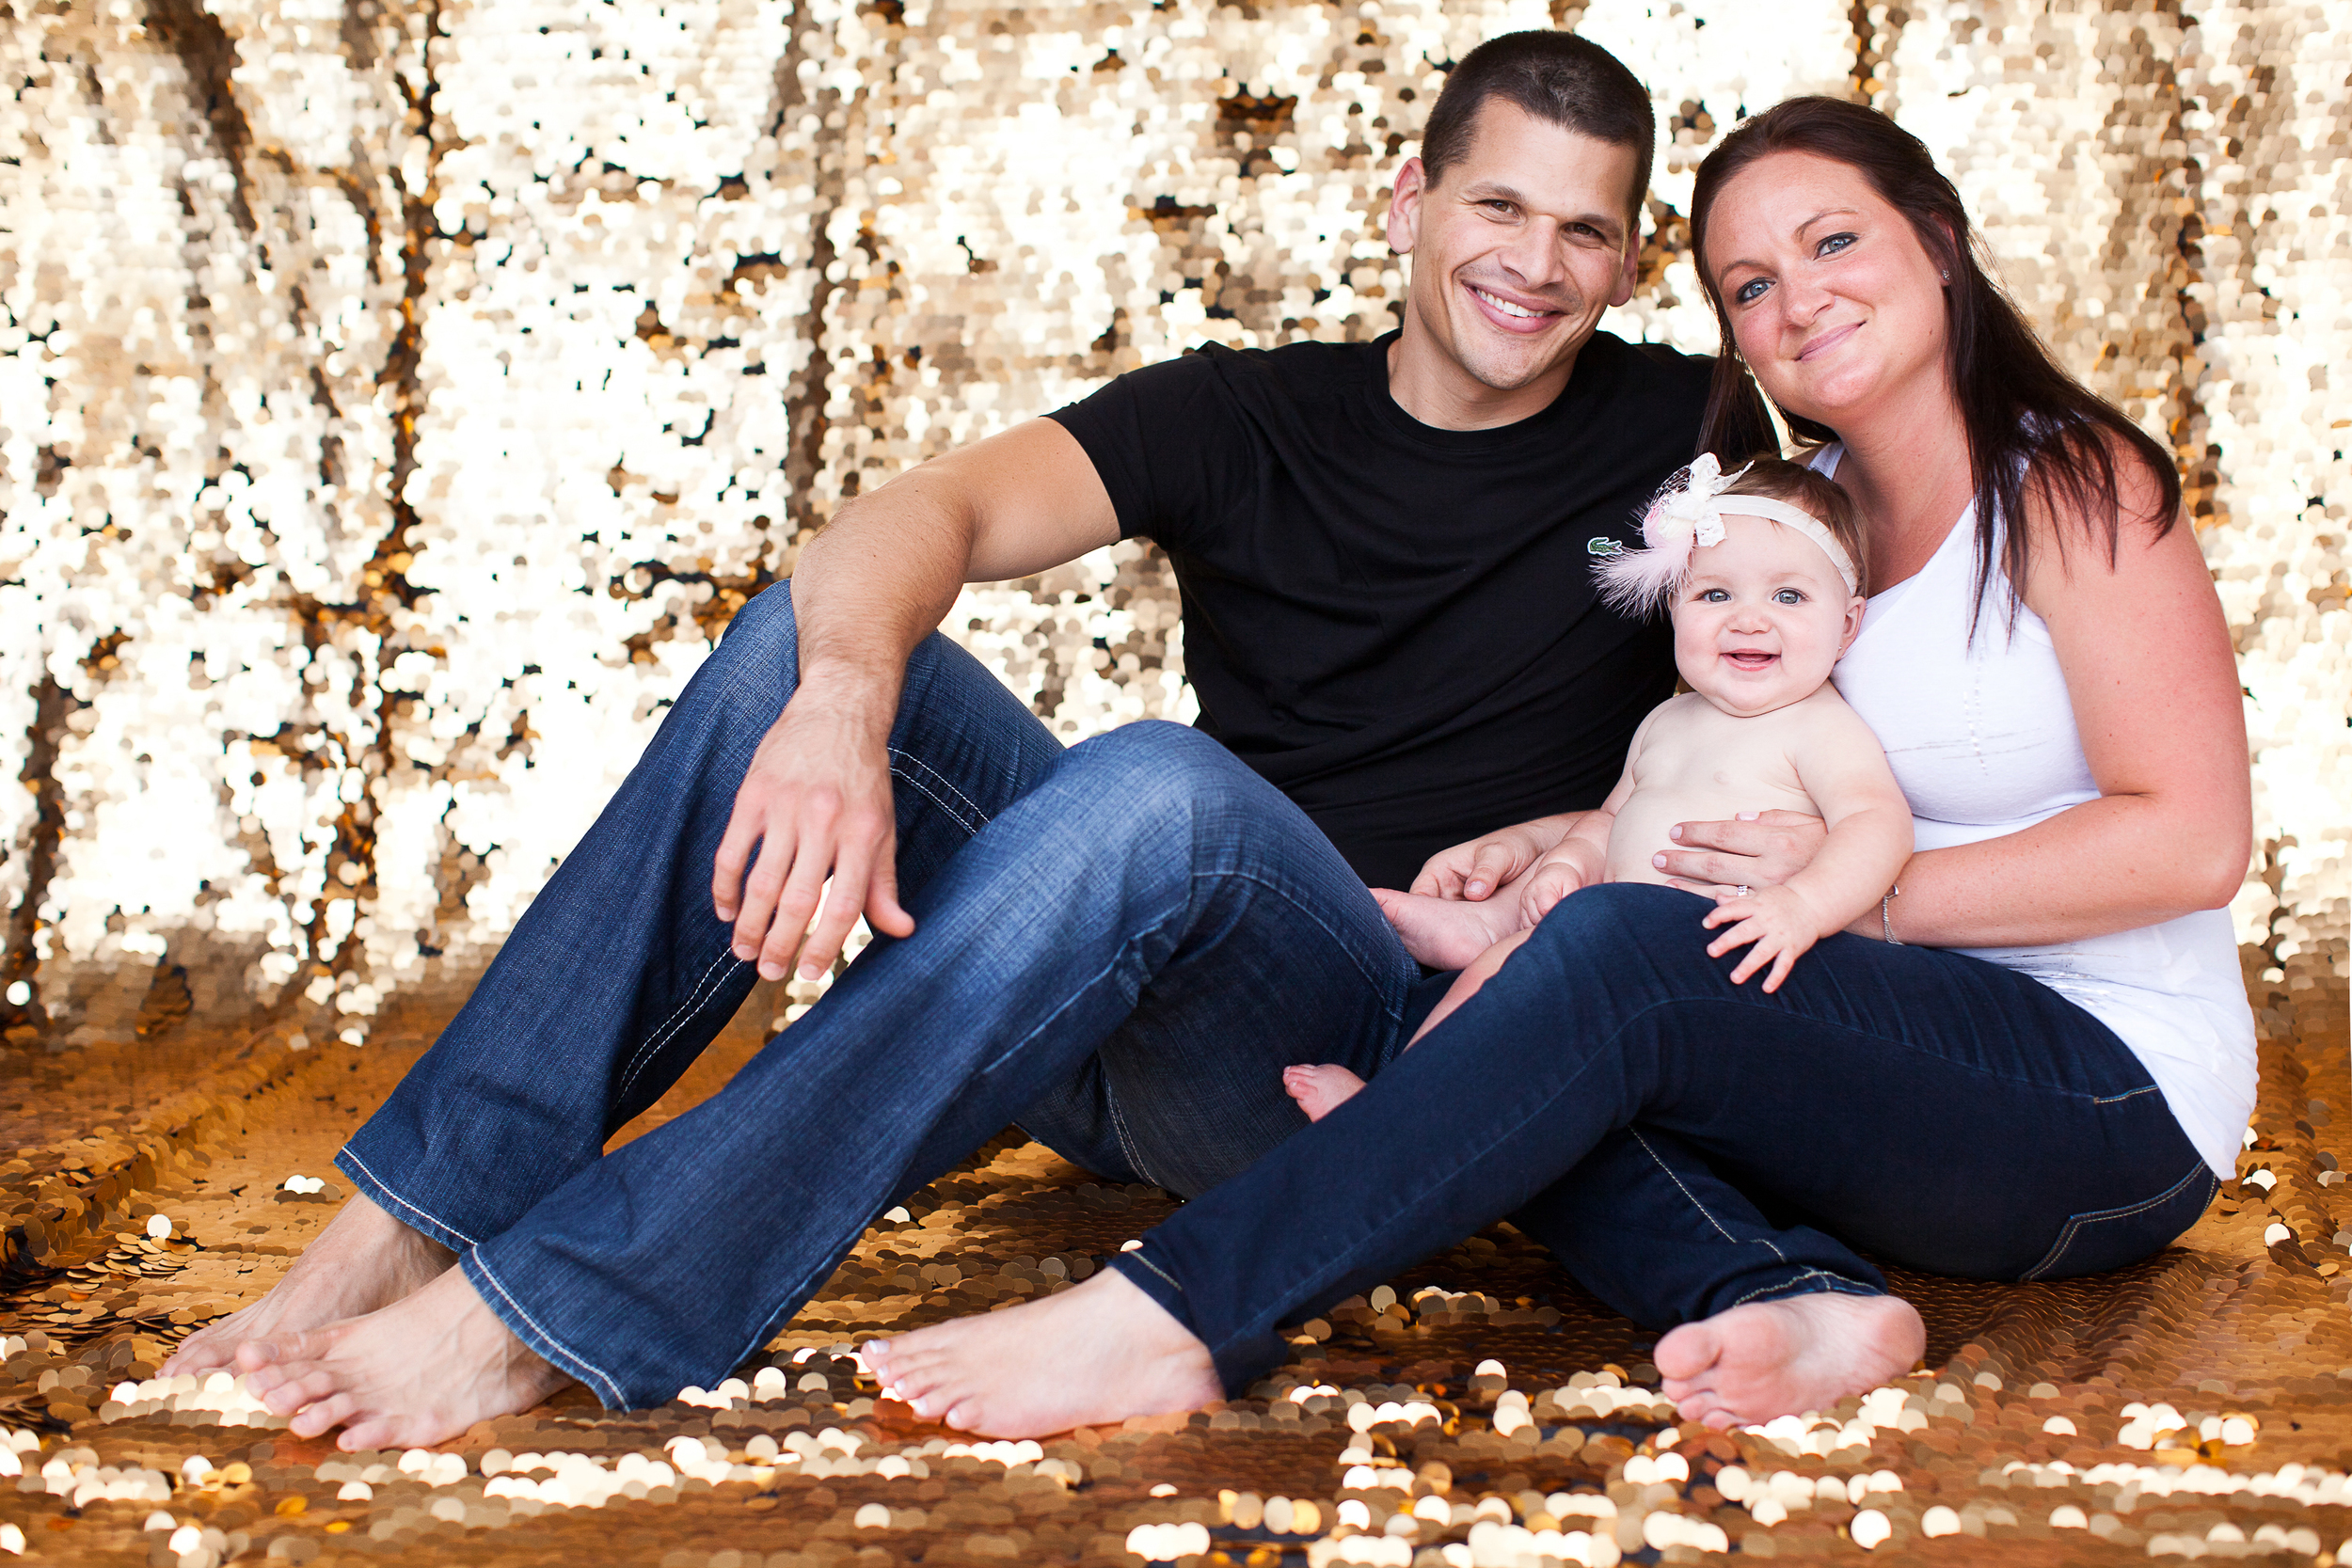 St-Louis-Family-Photographer_Ashley-Becker_0018.jpg